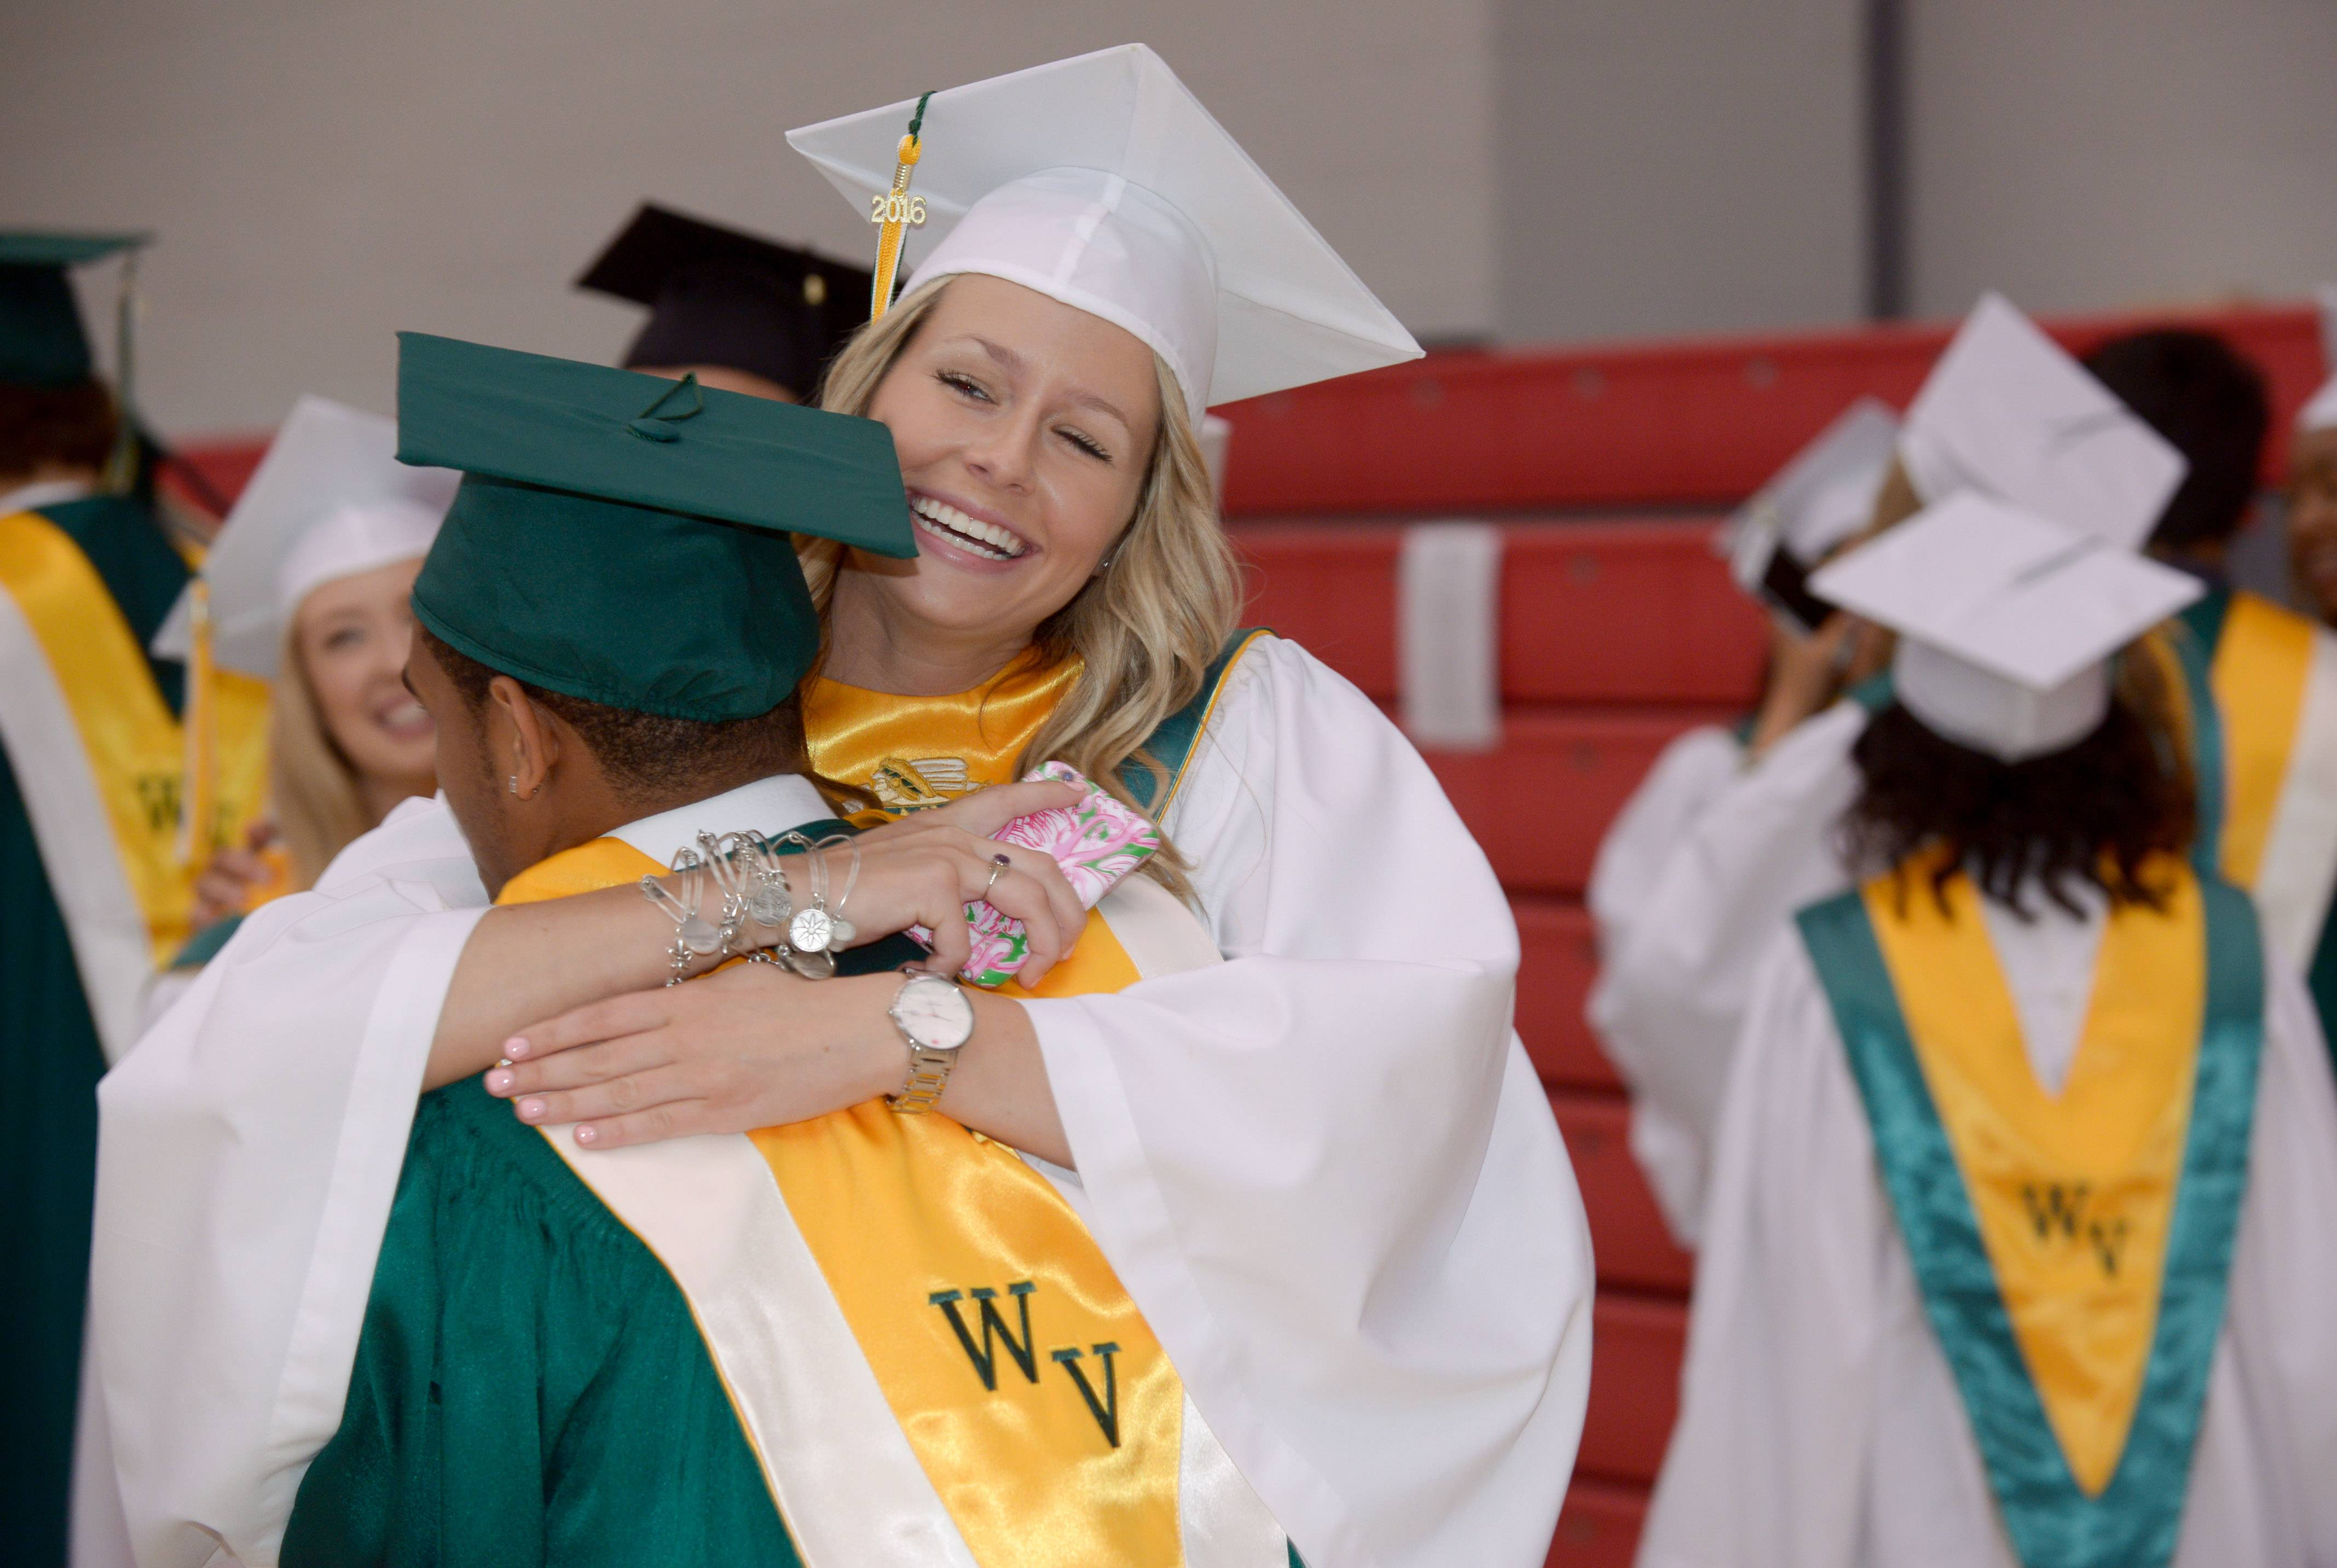 Lauren Howard give Rodney Gee a big hug before the start of the Waubonsie Valley High School graduation ceremony at Northern Illinois University in DeKalb on May 29, 2016.